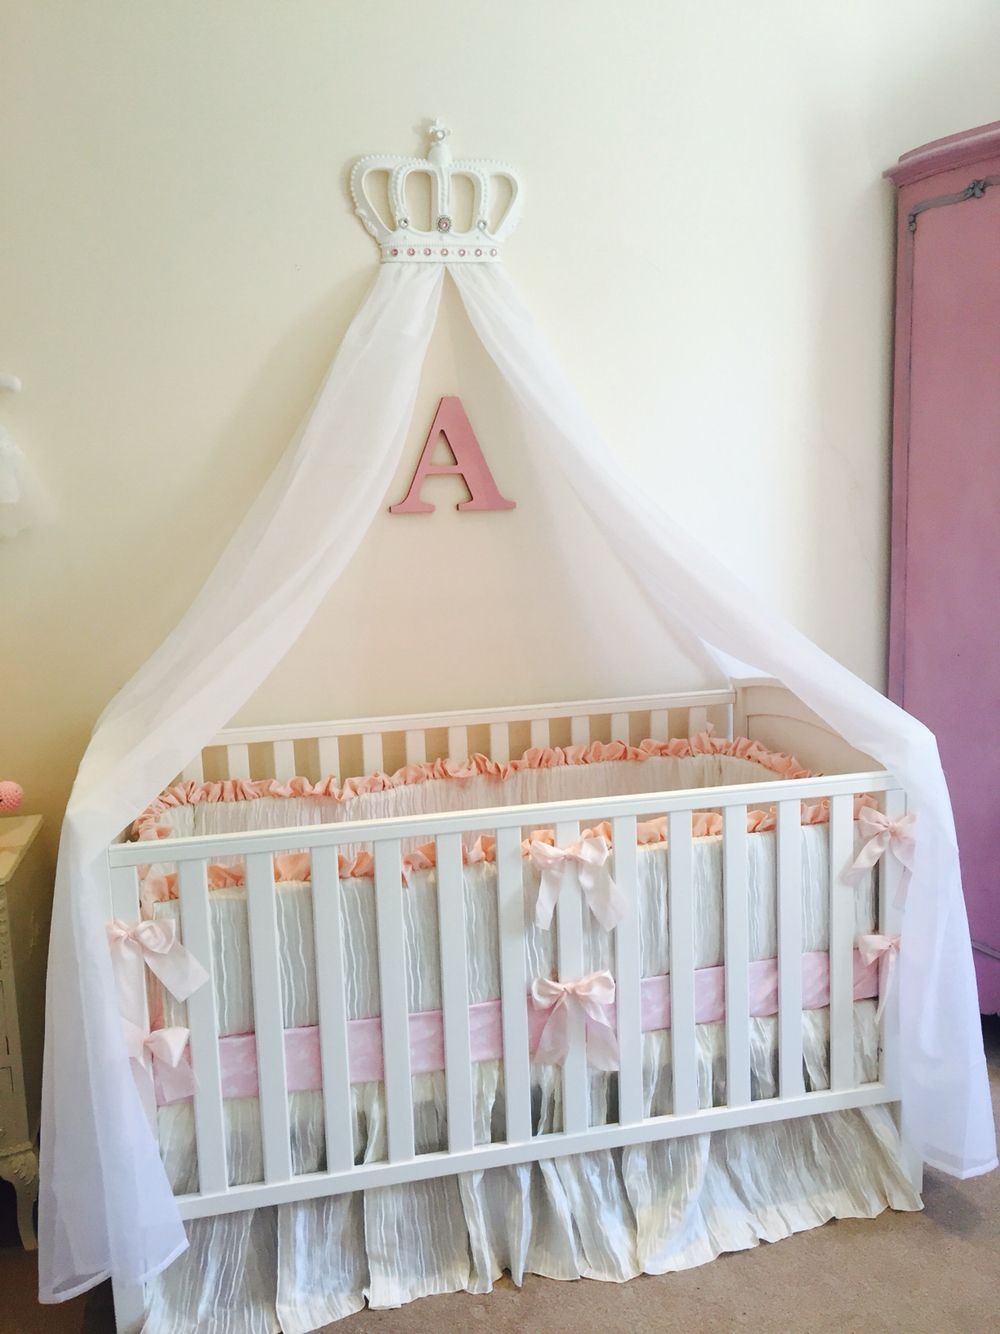 Cot crib princess white pink bed canopy crown criana cot crib princess white pink bed canopy crown amipublicfo Image collections